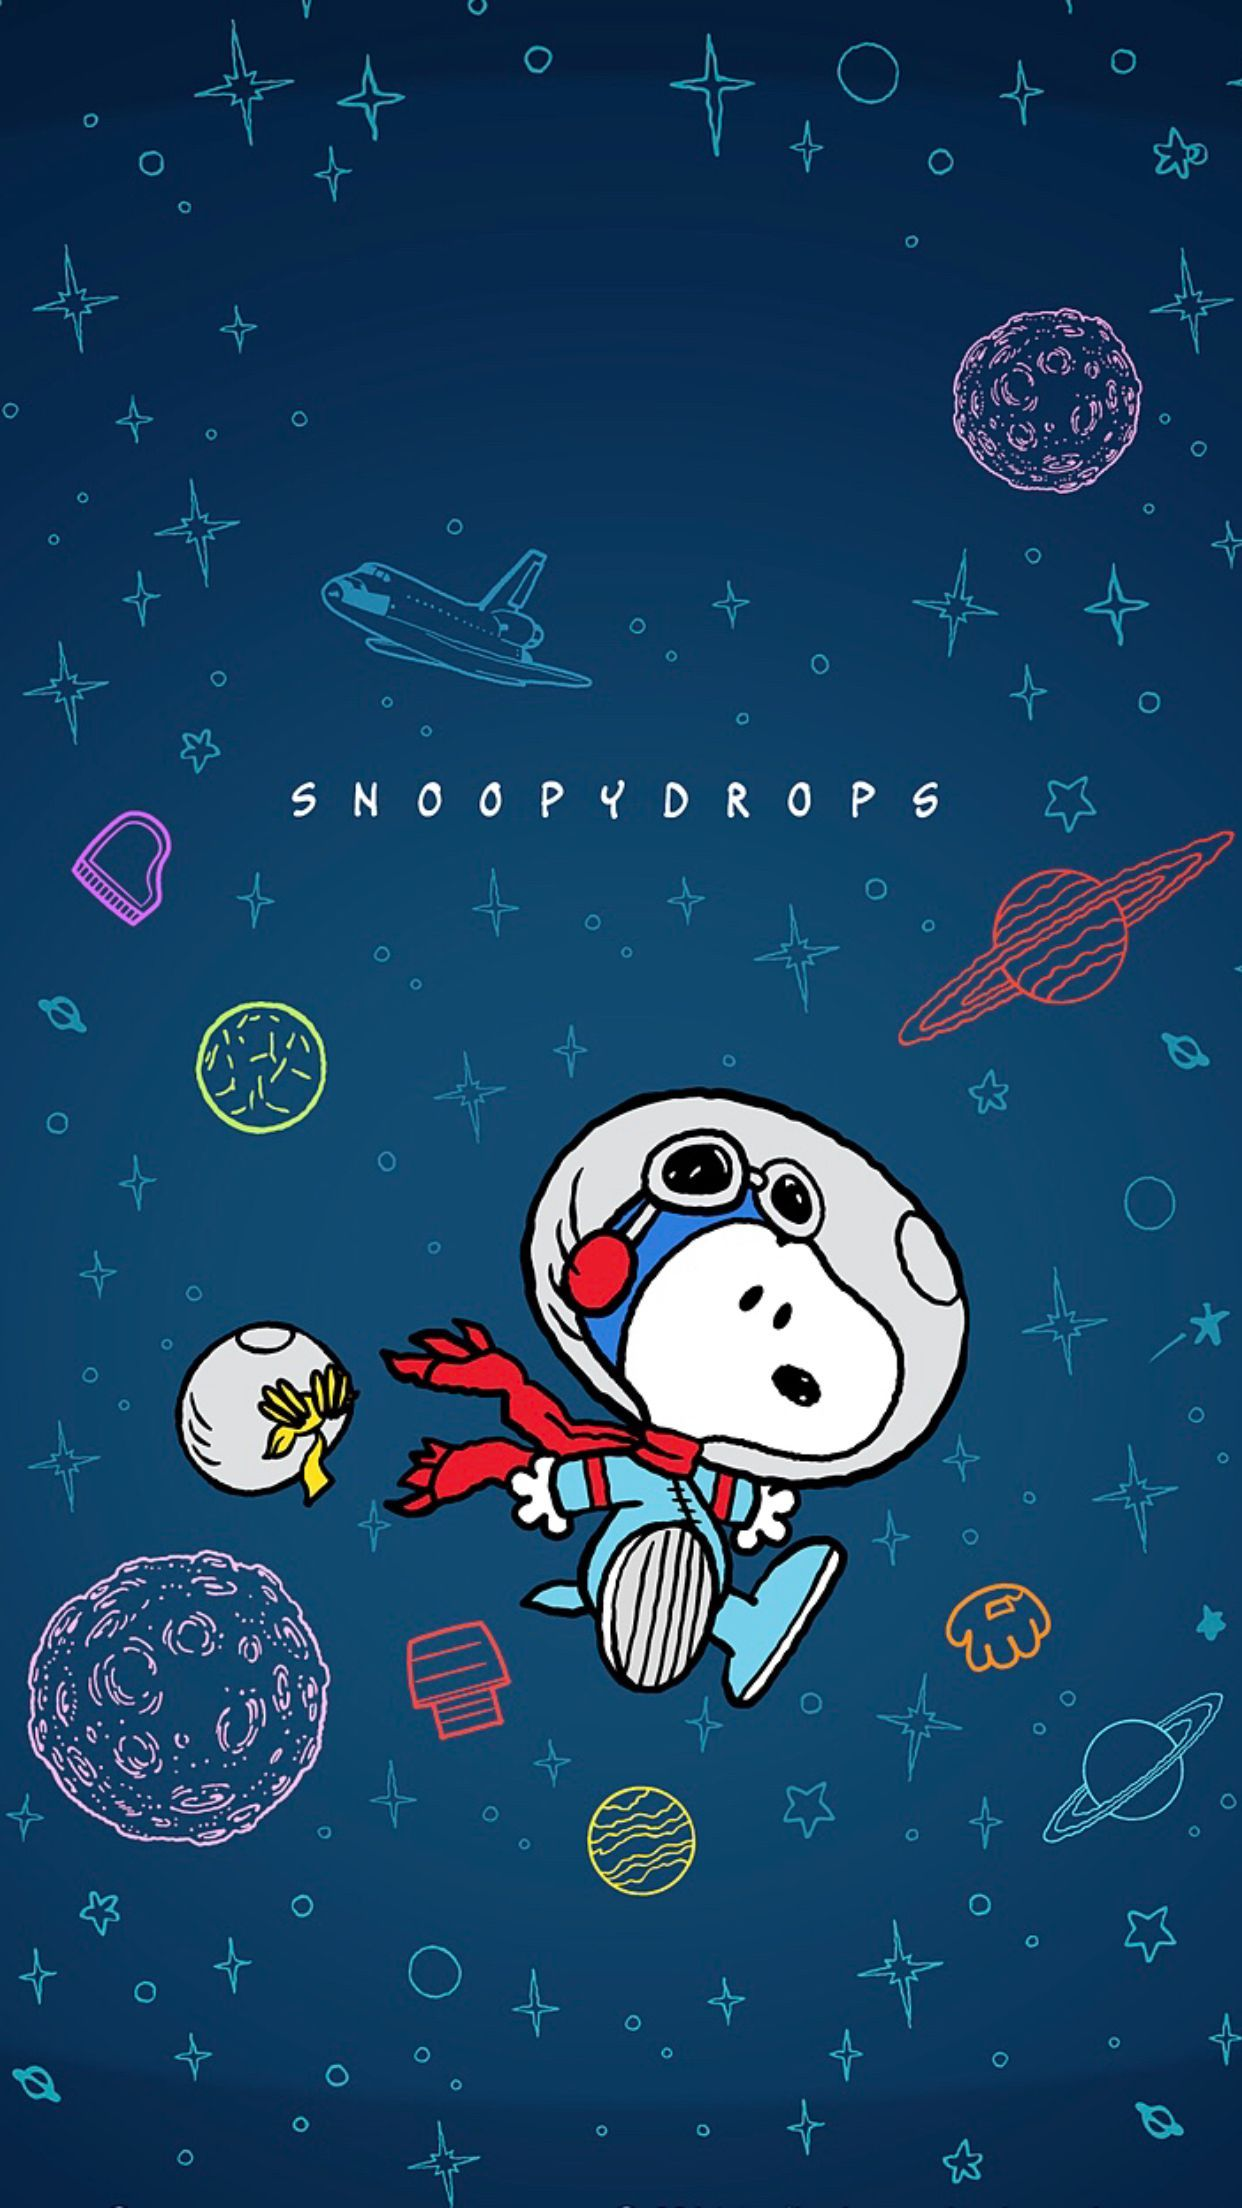 snoopy in space Google Search Snoopy wallpaper, Snoopy